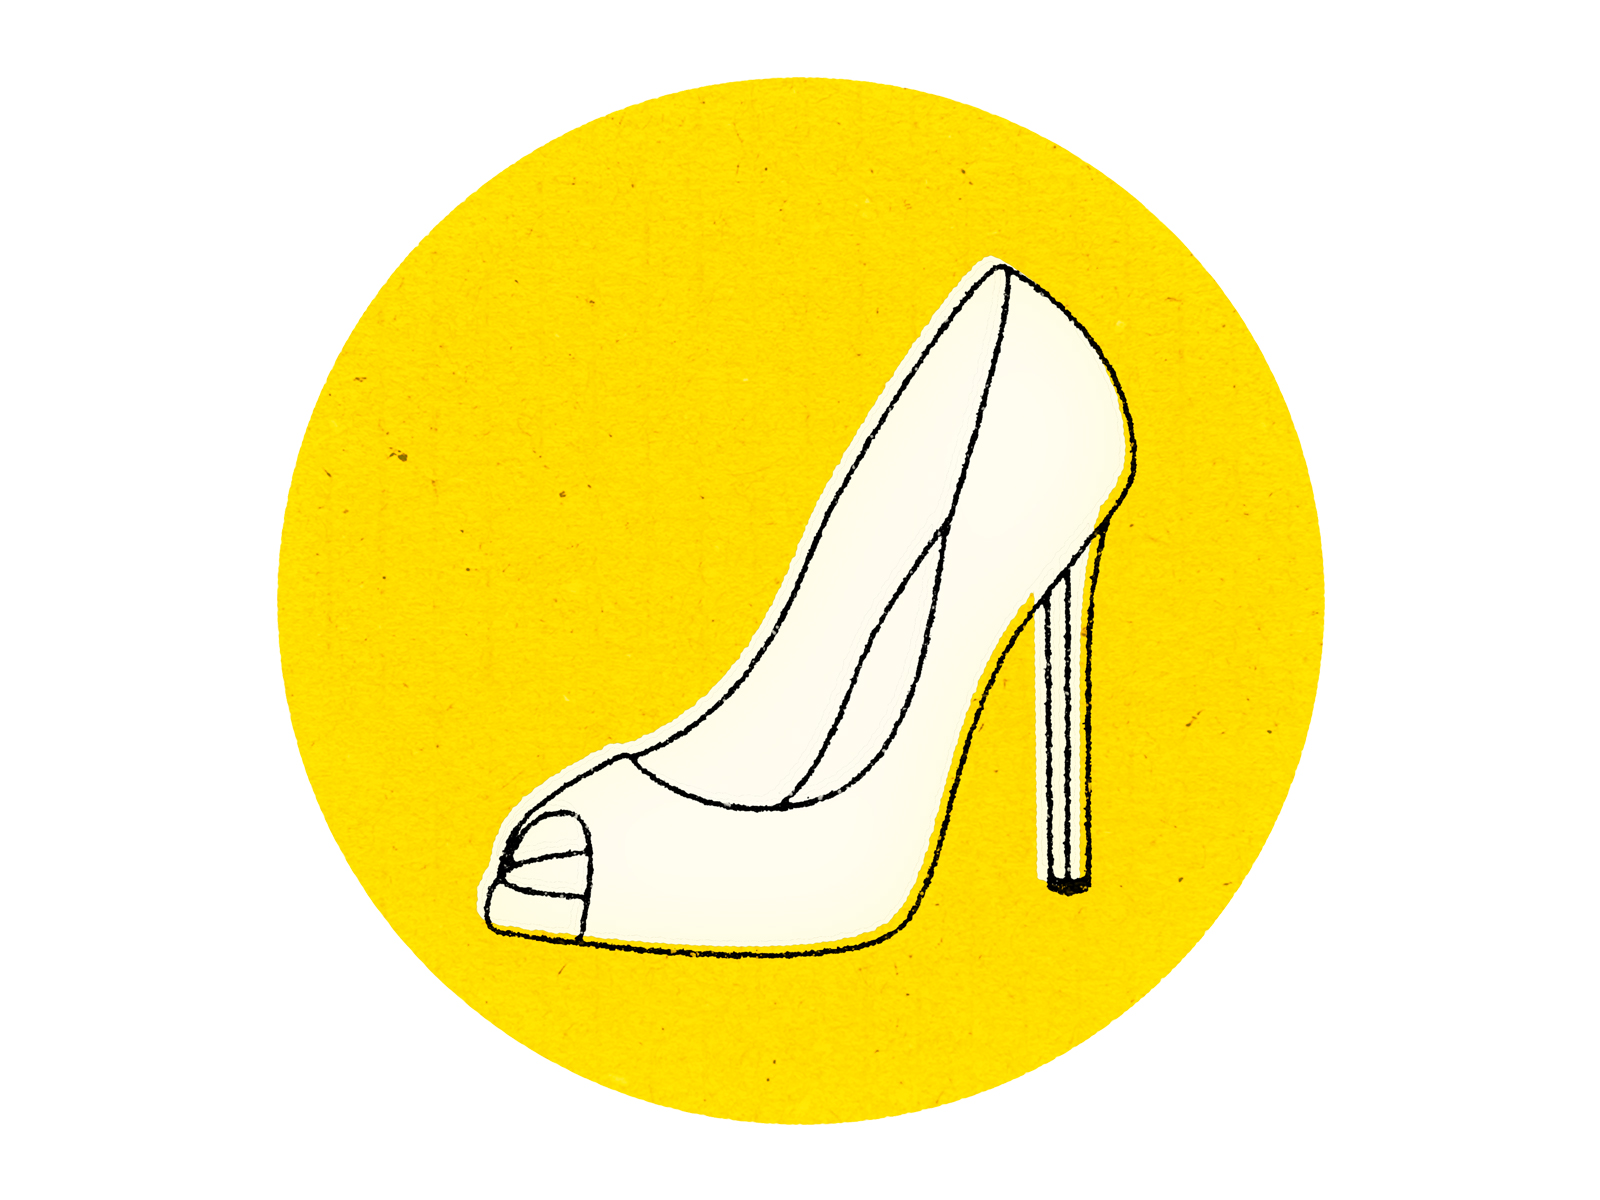 Bloomingdales-Pumps-Icon.jpg